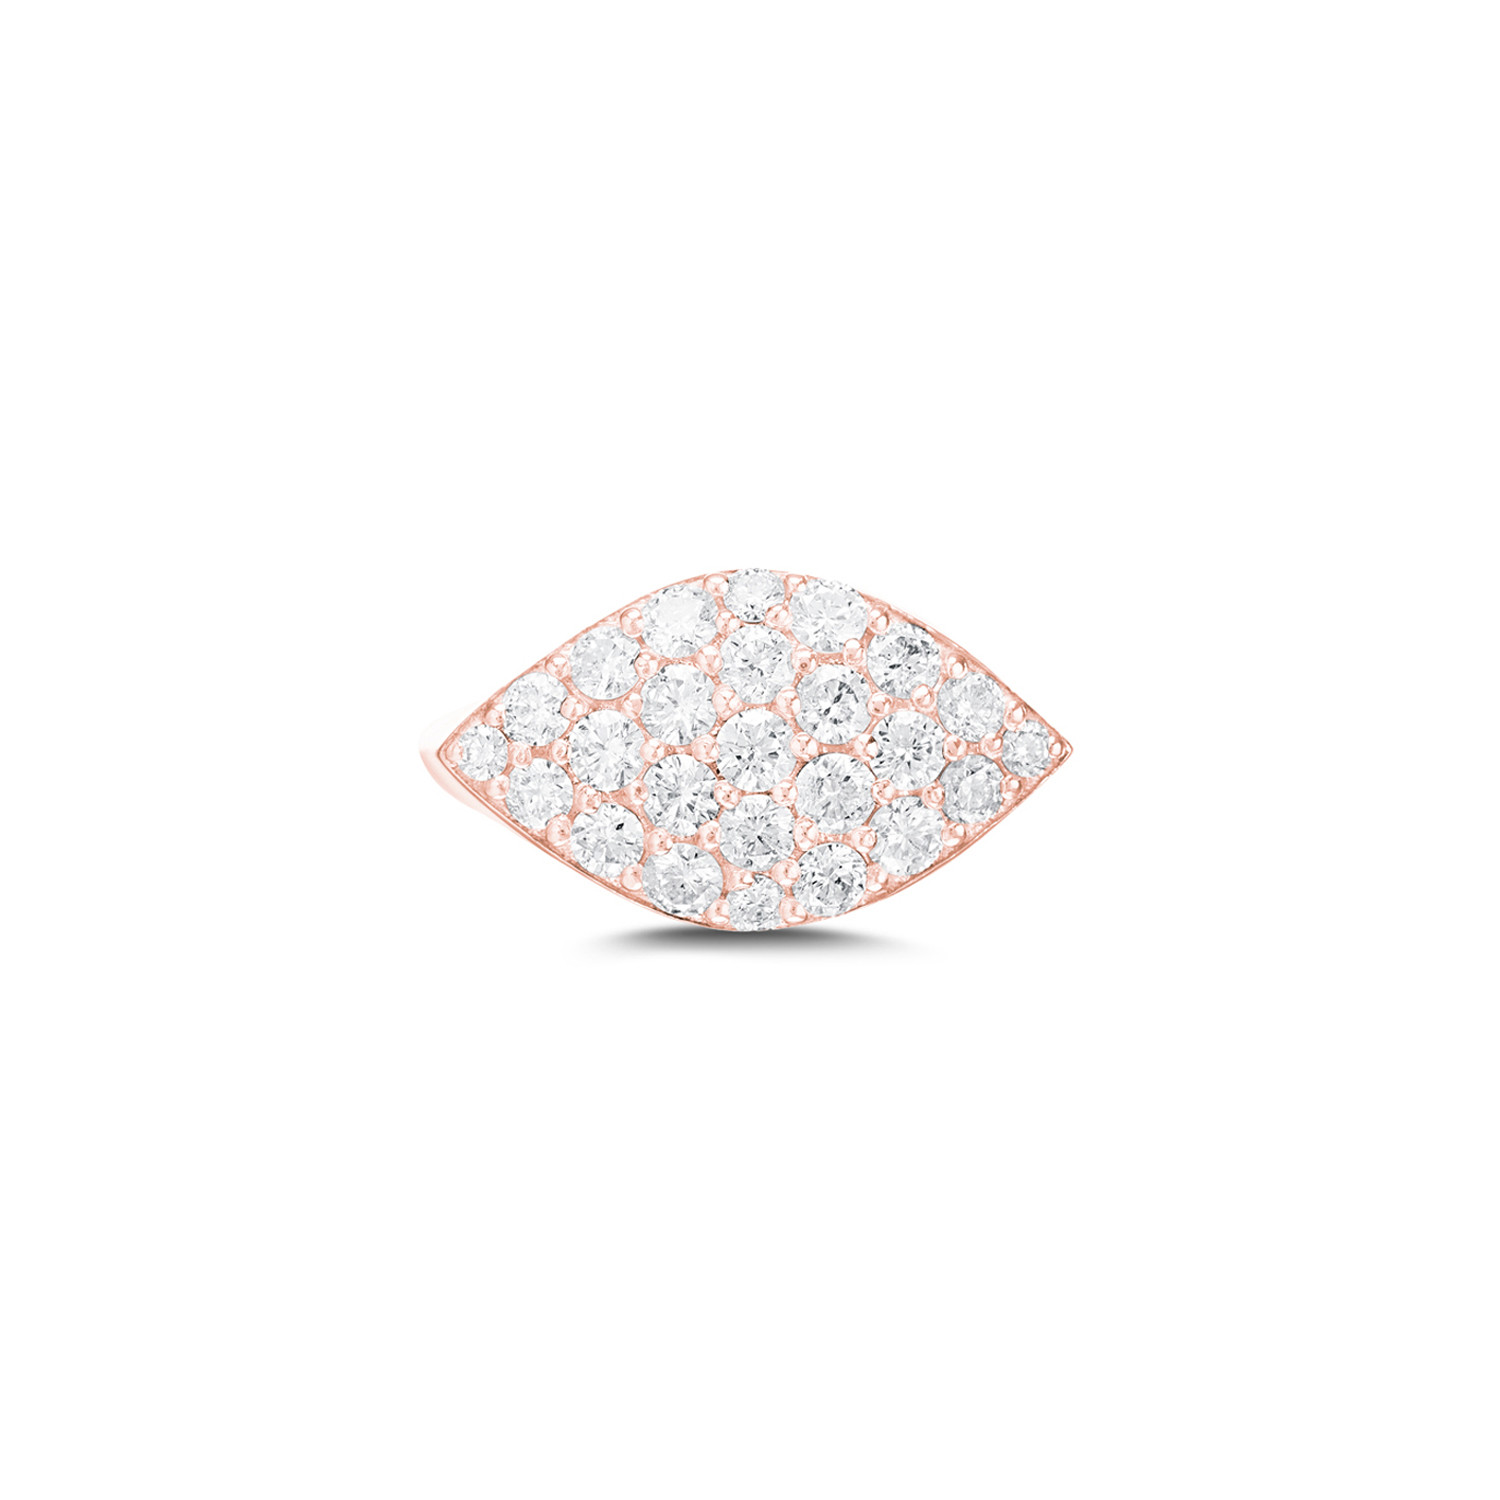 Carbon & Hyde Gemma Diamond Pinky Ring in 14K Gold front view